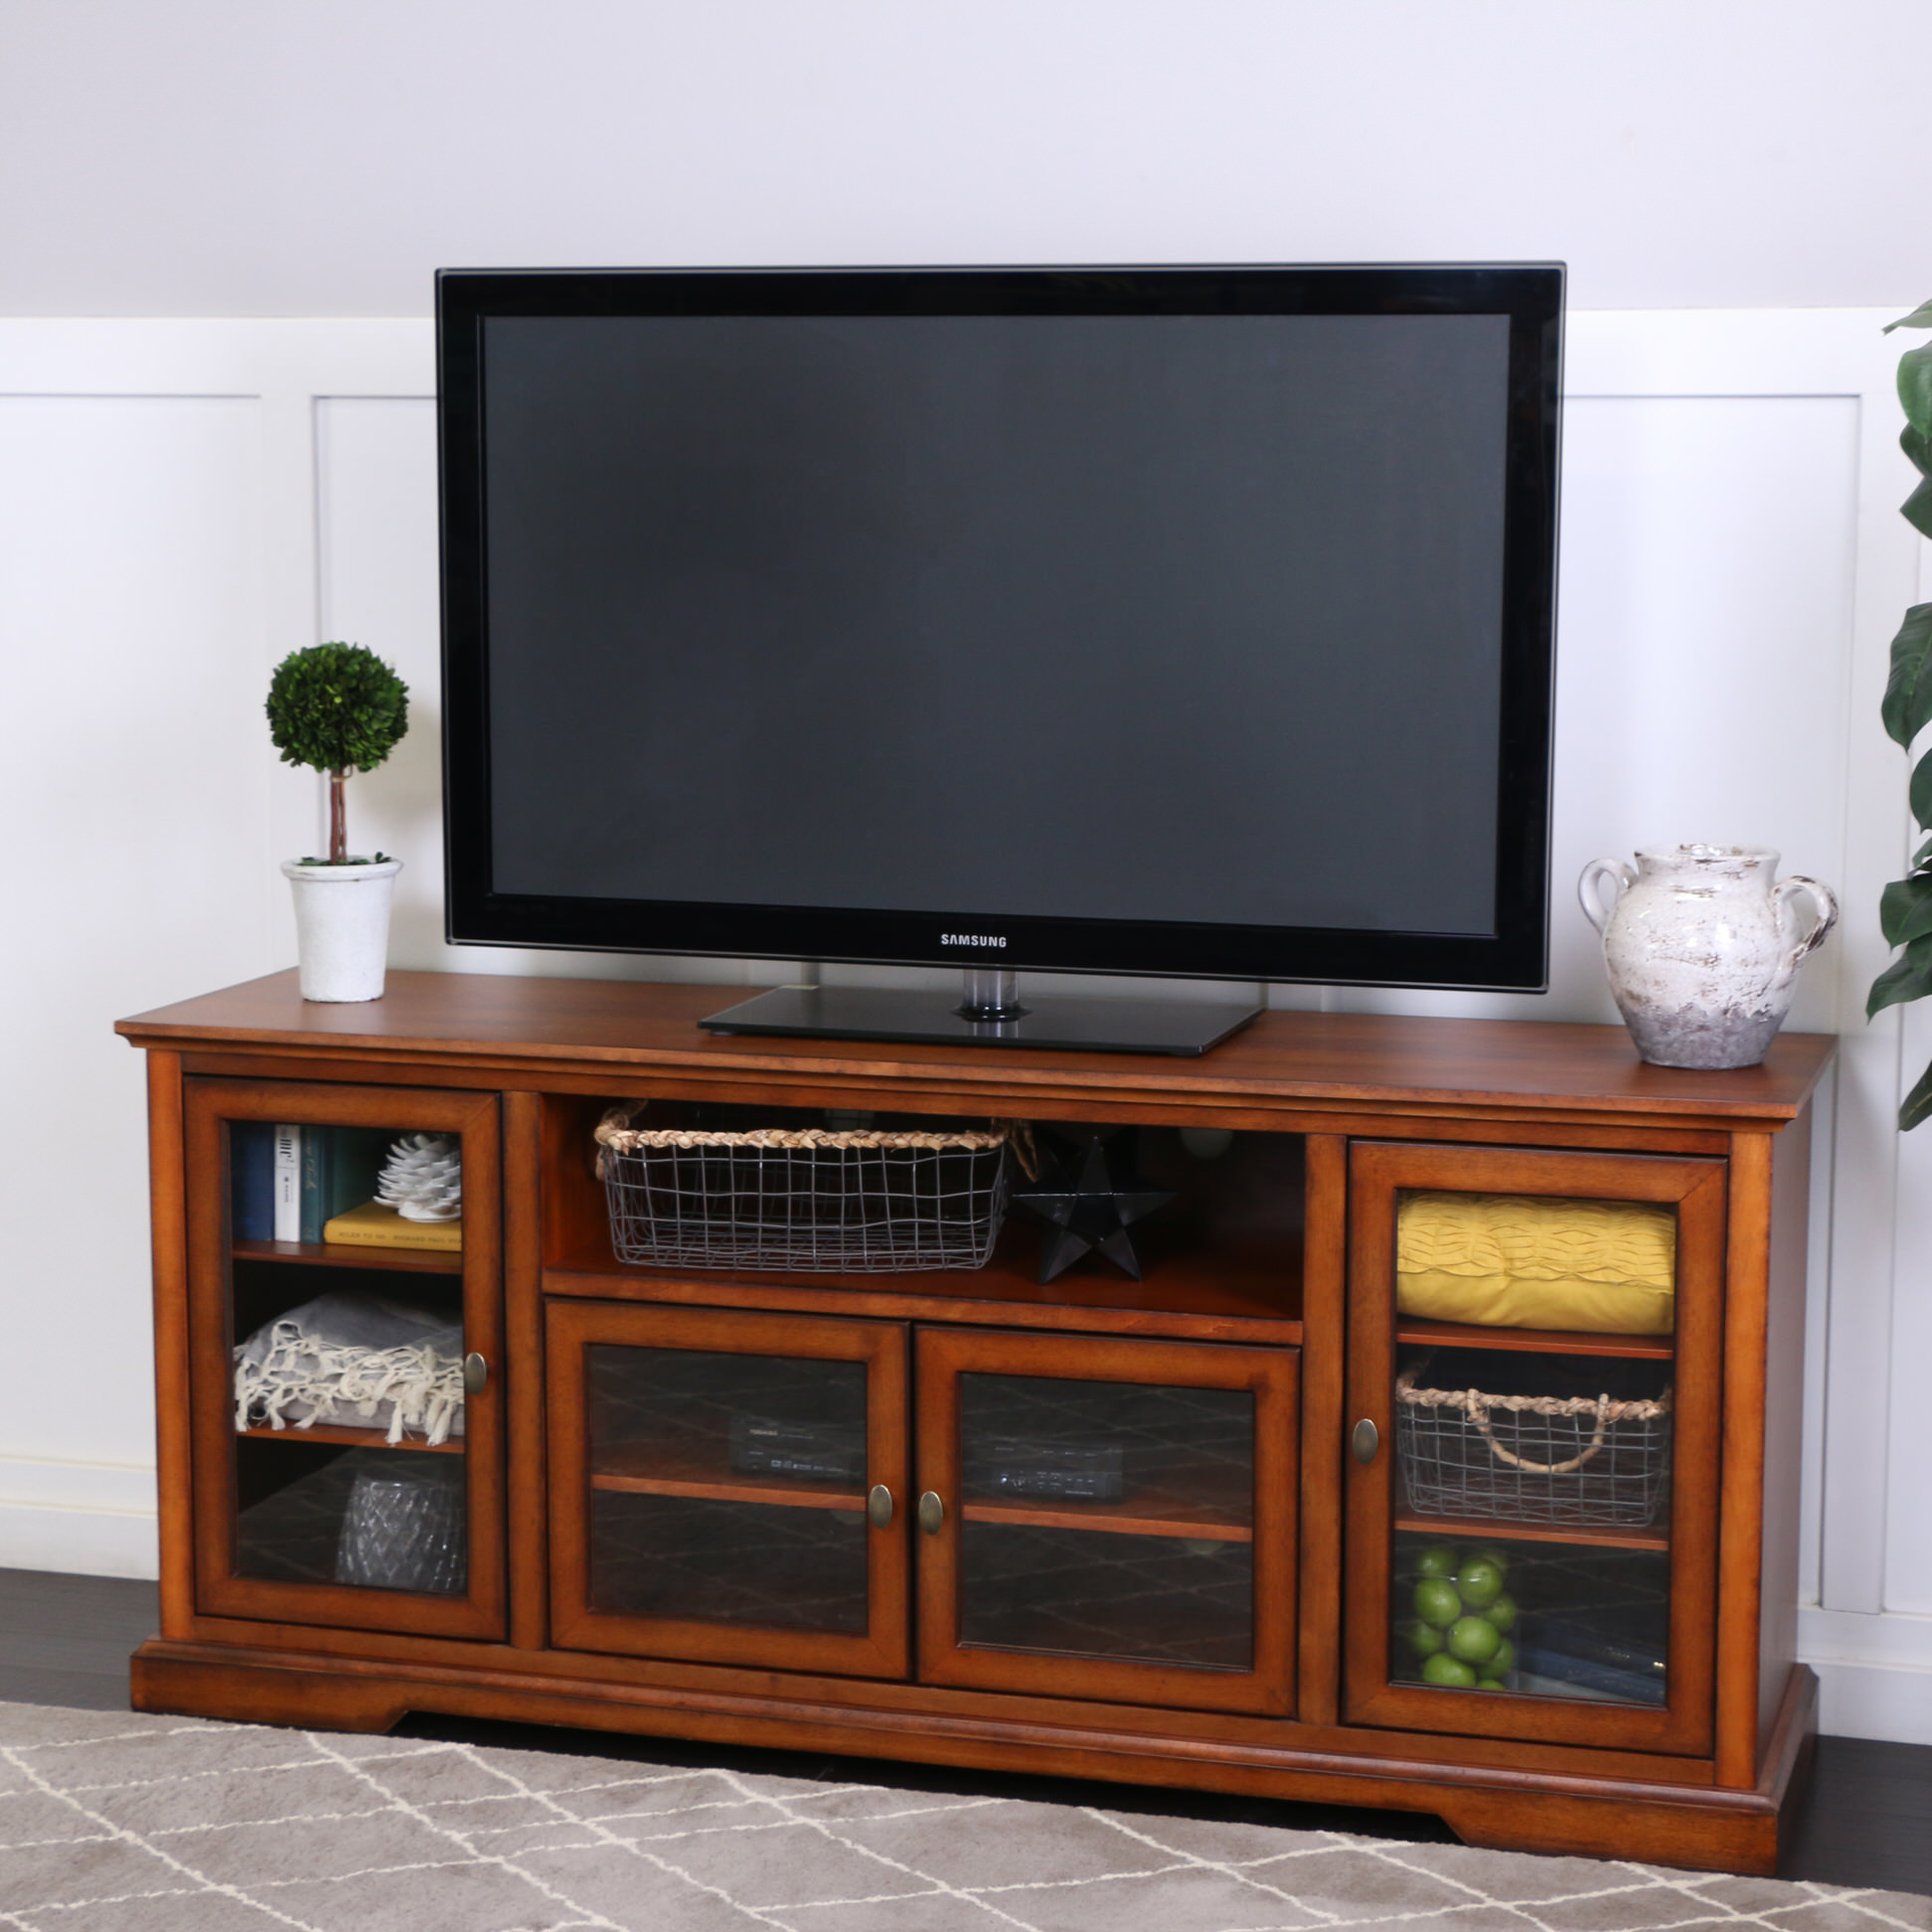 70 Inch Highboy Style Wood Tv Stand Rustic Brown By Walker Edison